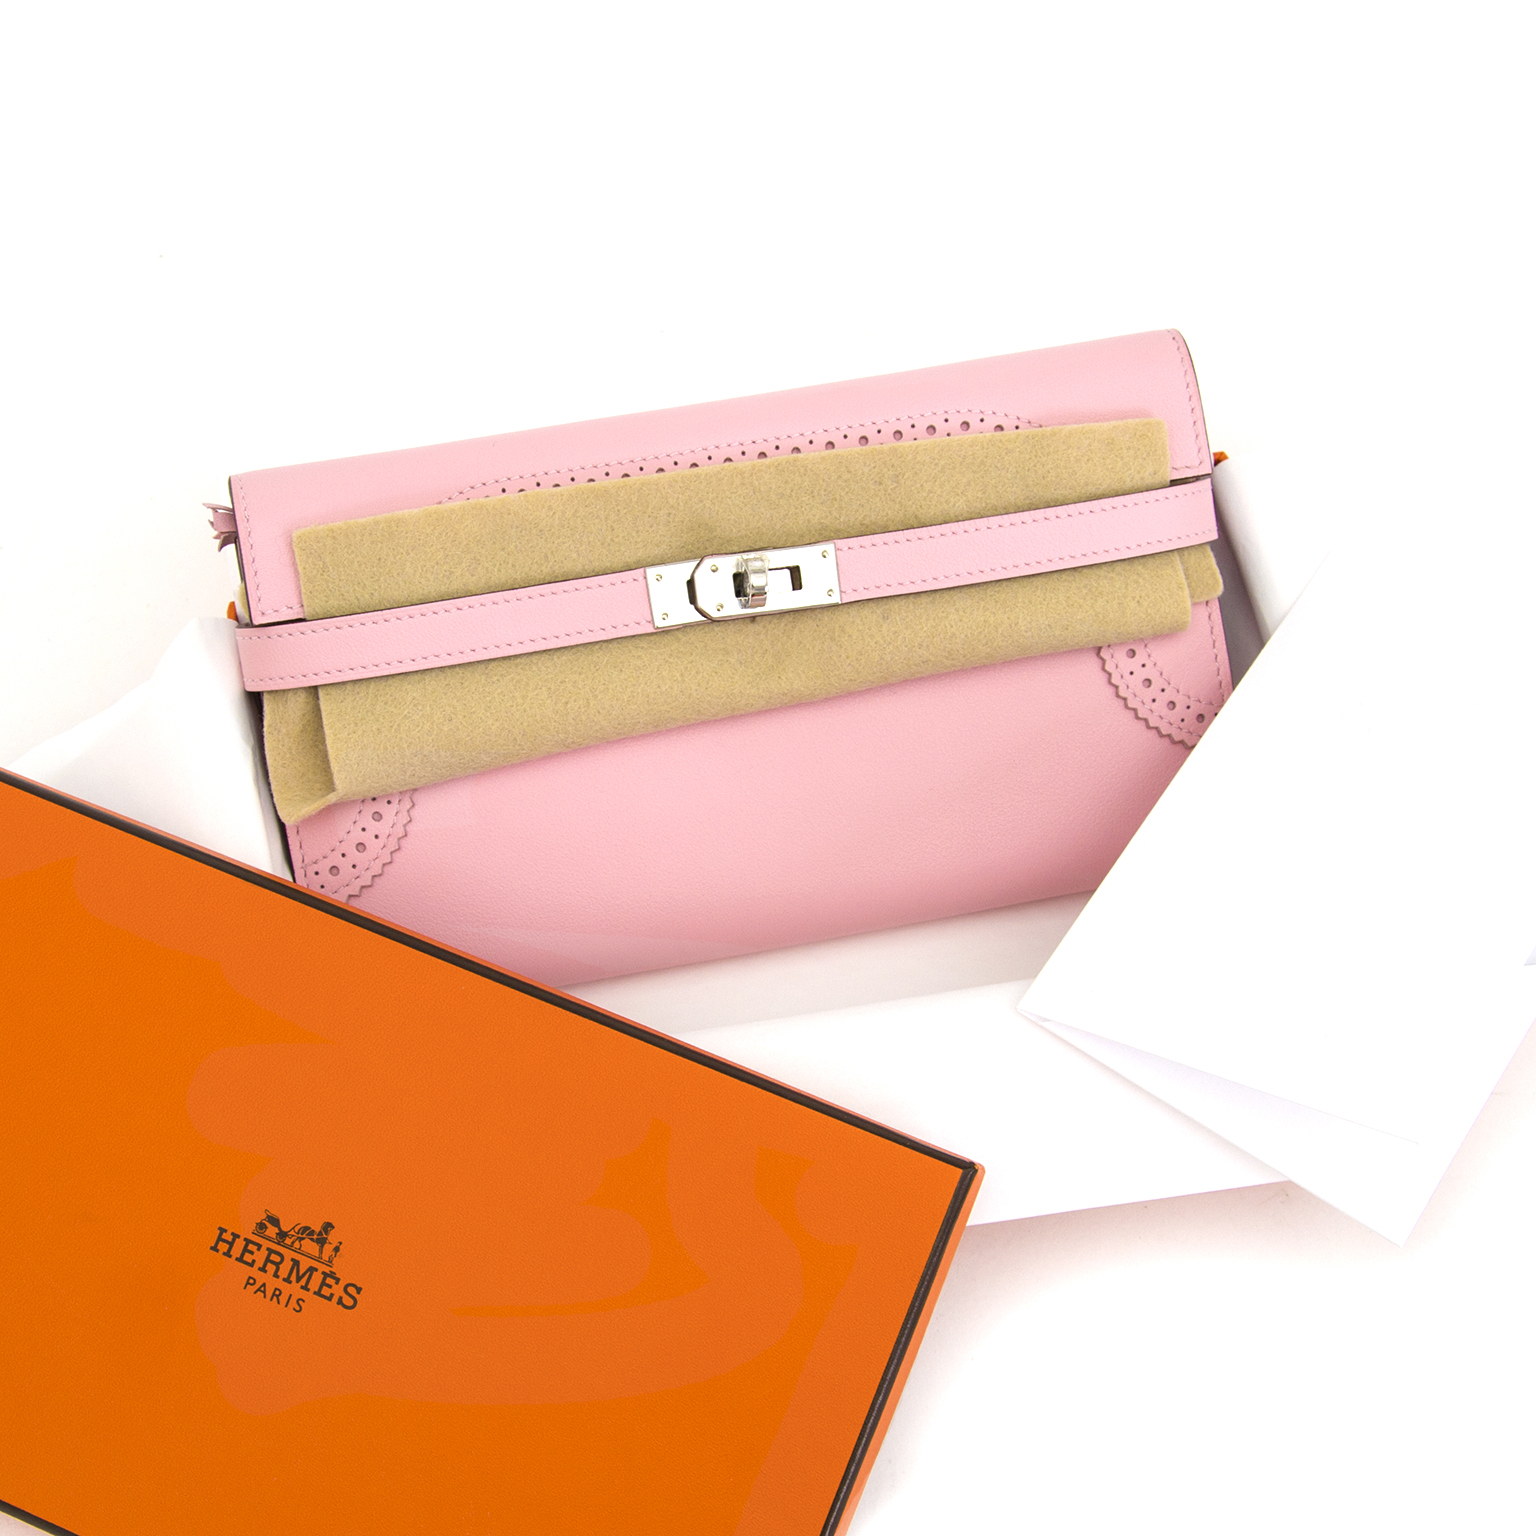 shop your designer secondhand luxury Brand New Hermes Kelly Wallet Rose Classique Ghillies Veau Swift